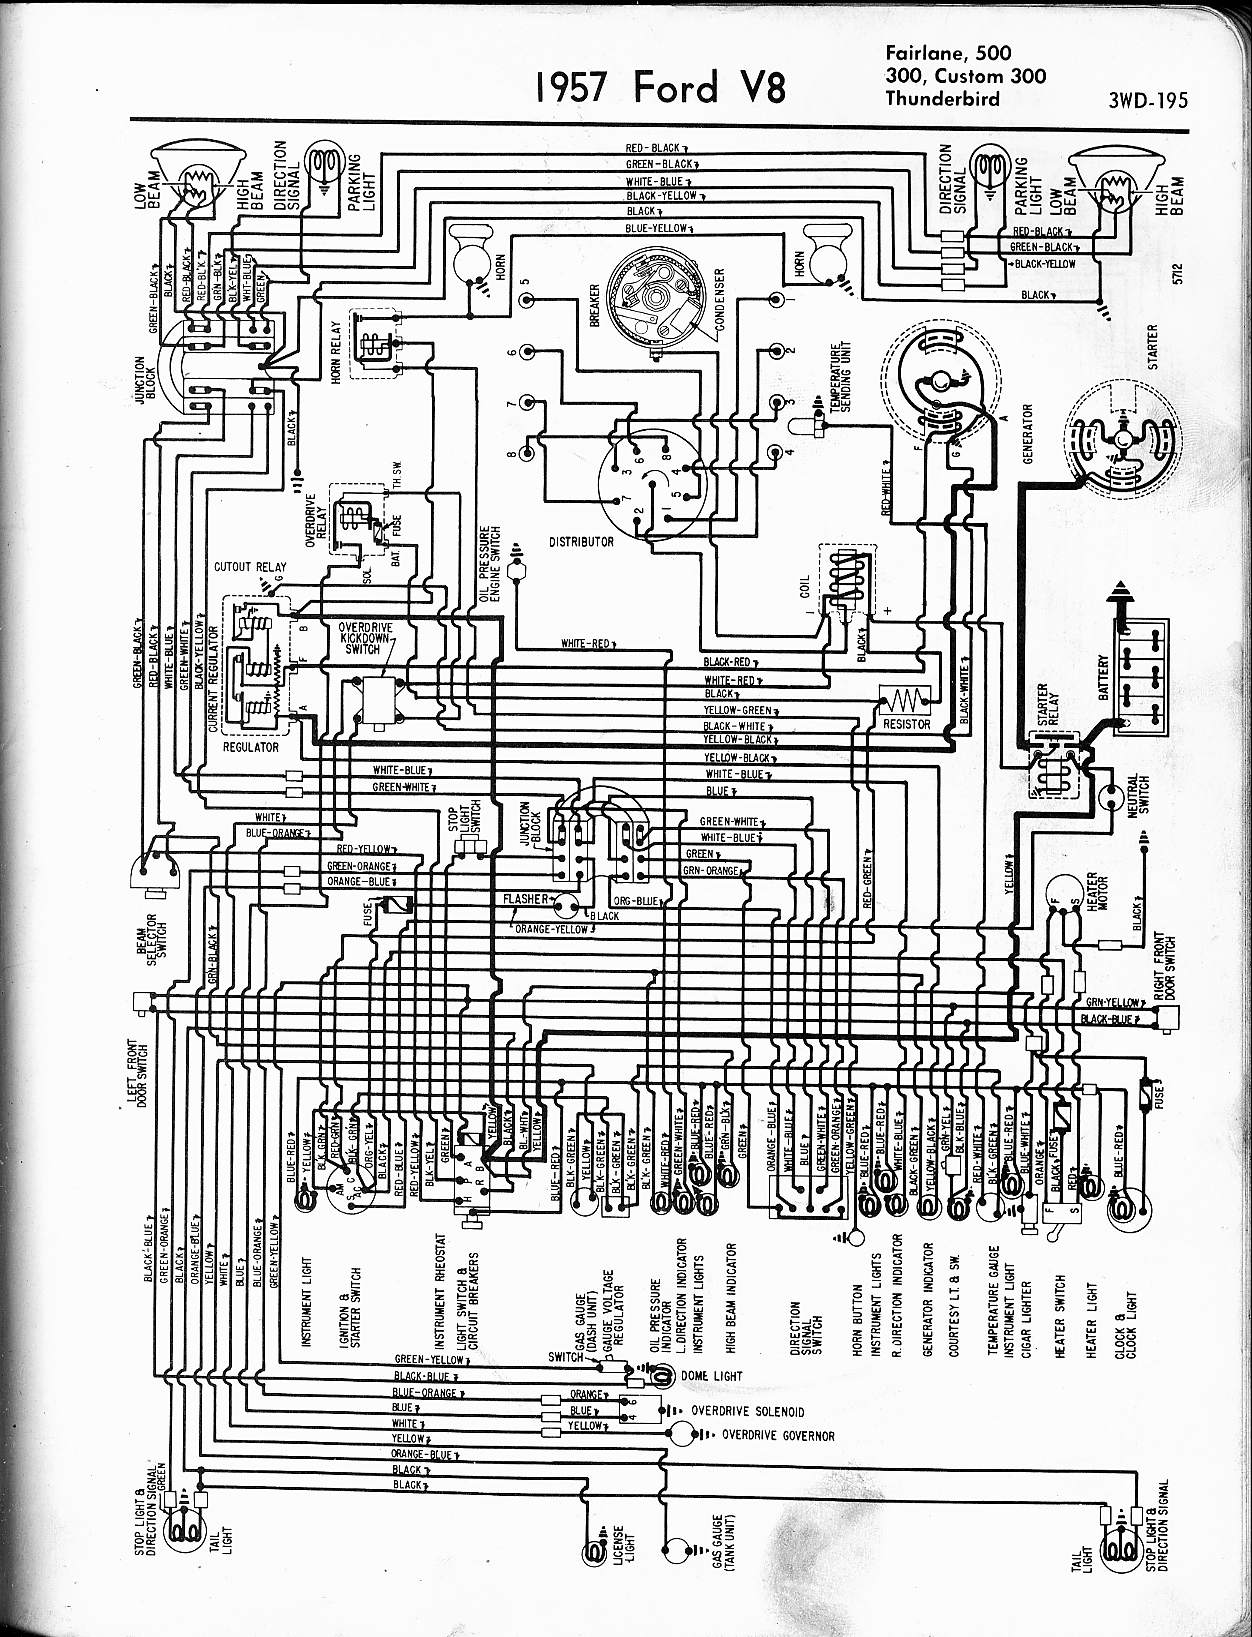 1960 Chevy C10 Wiring Diagram Electric Worksheet And Pontiac Schematic Electrical Schematics Rh Landingchurchseattle Com 1963 1962